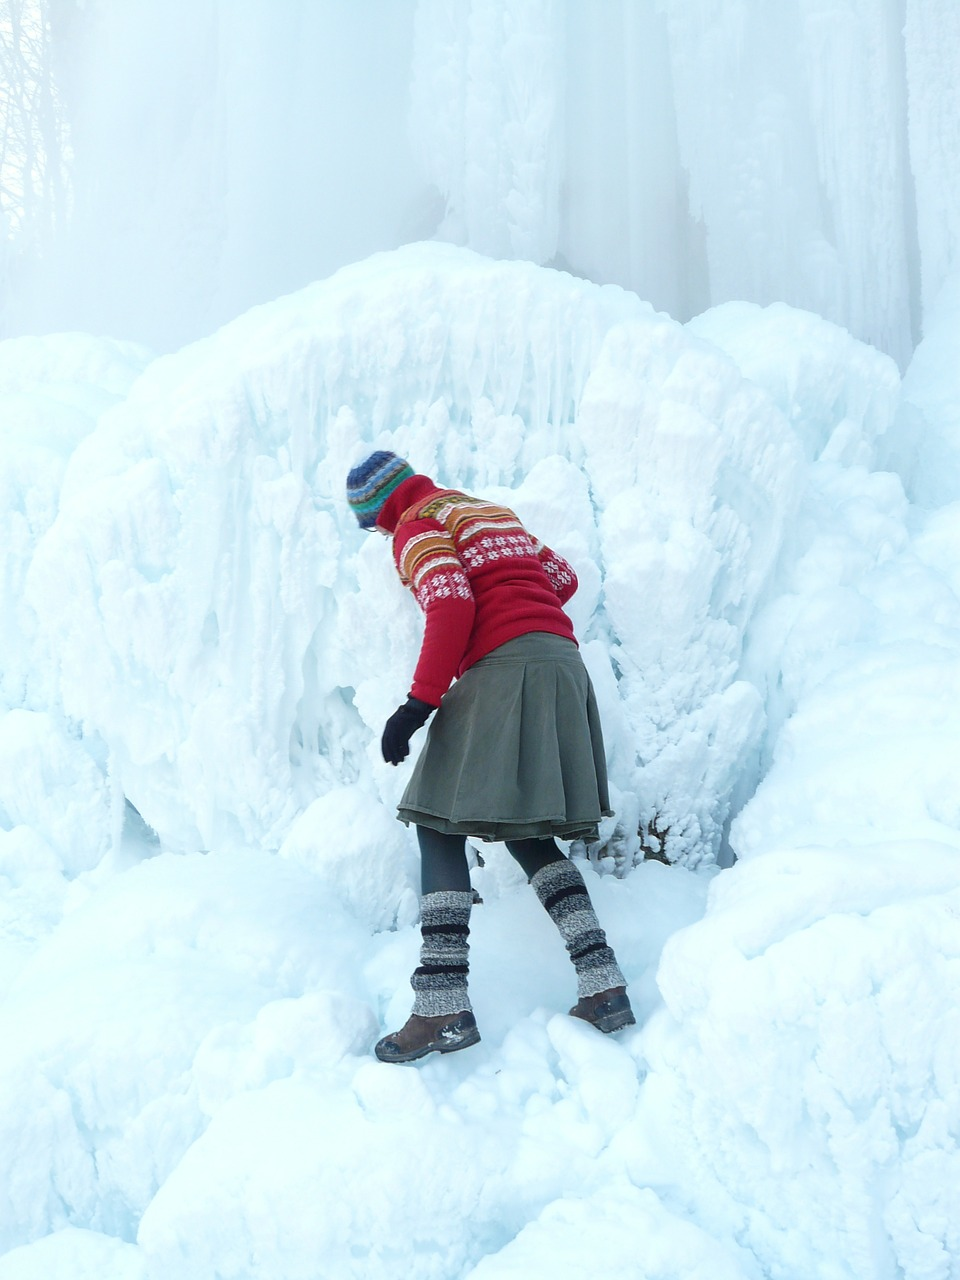 person,ice,run,human,woman,slippery,ice formations,risk,block of ice,winter,caution,climb,free pictures, free photos, free images, royalty free, free illustrations, public domain